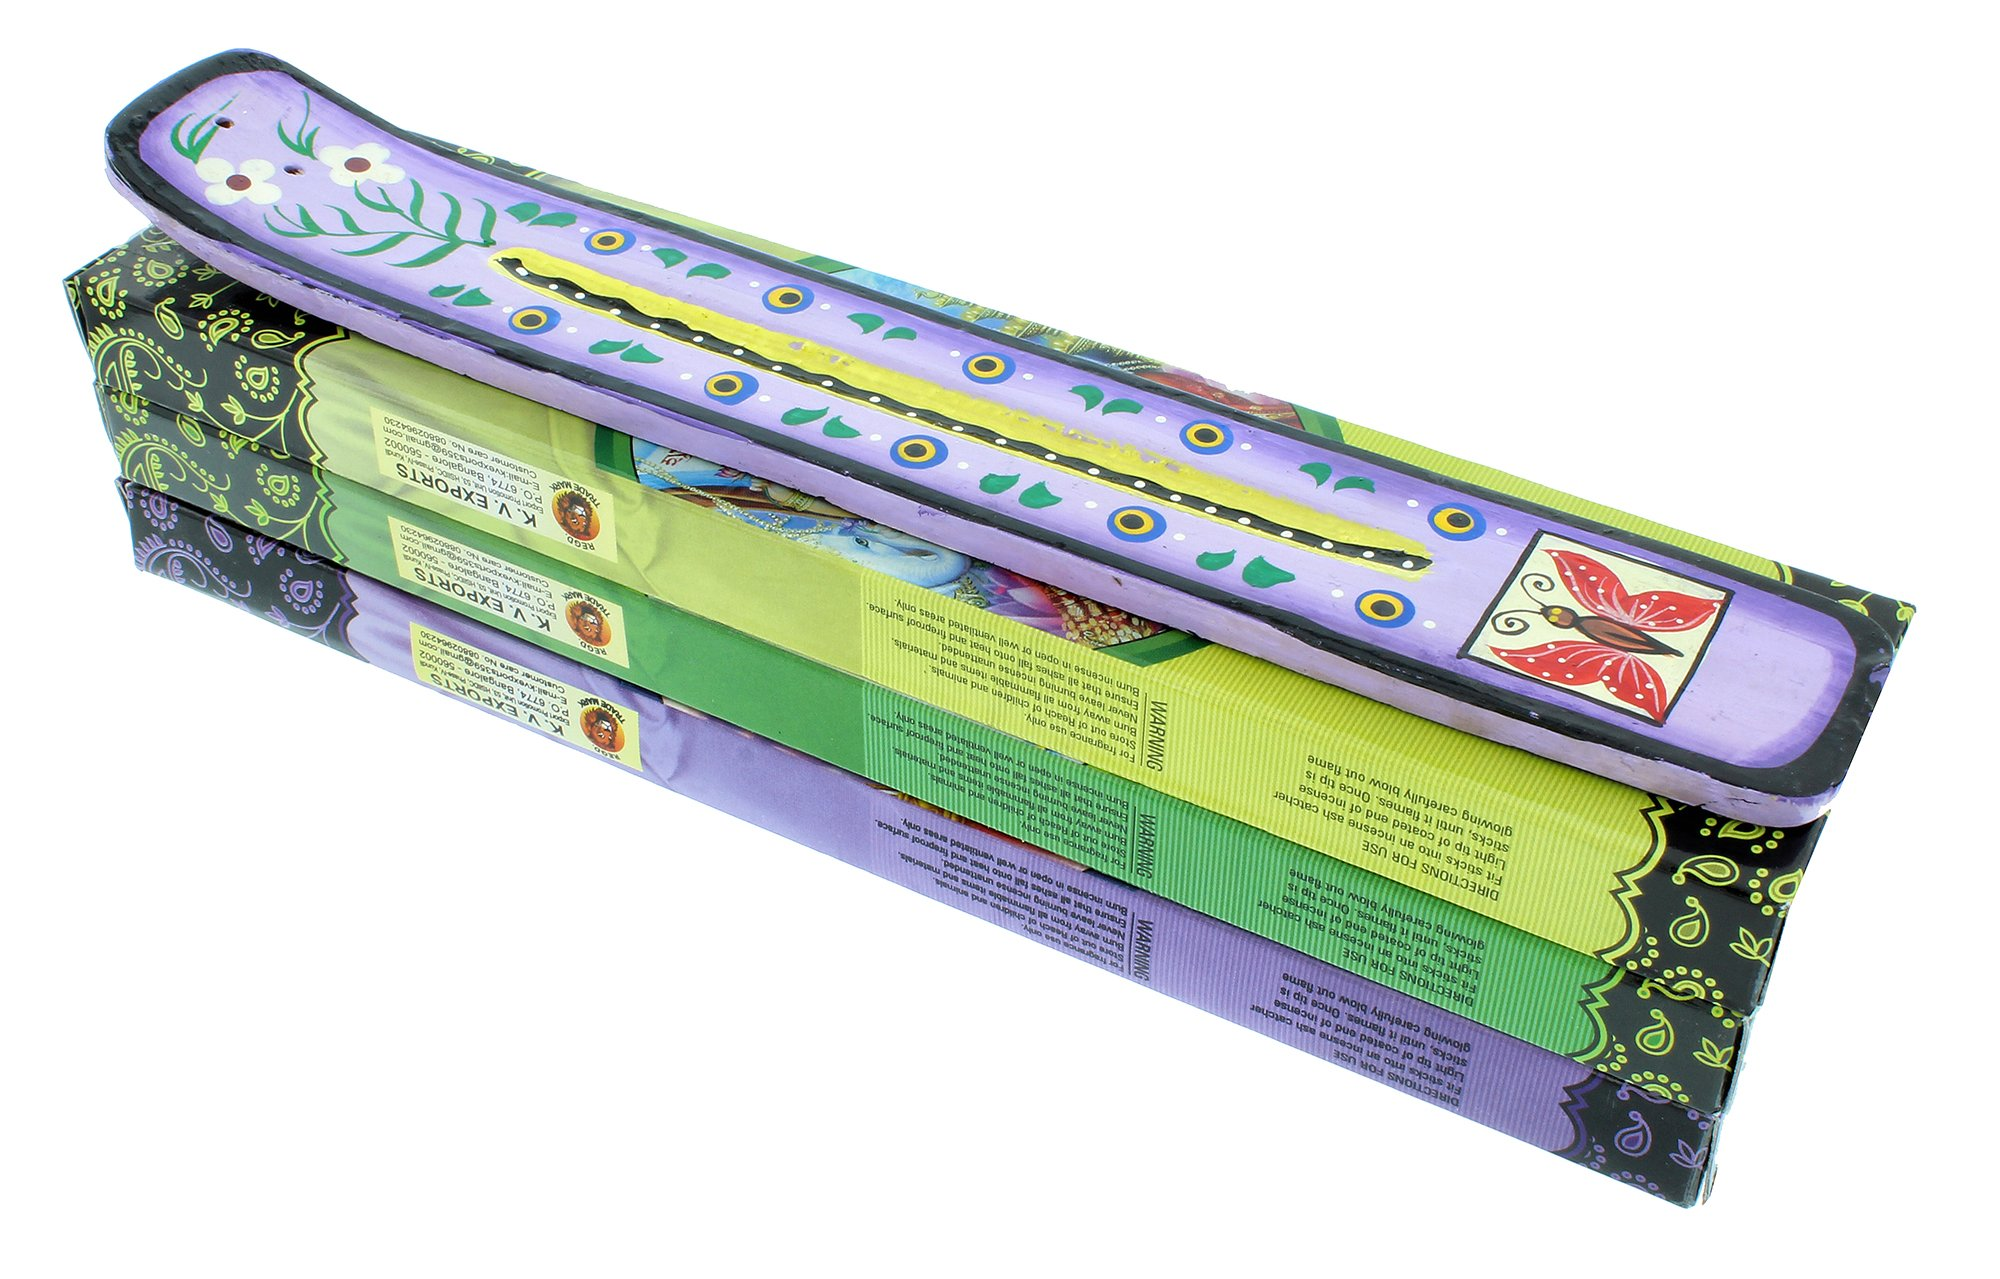 Zen Mood Incense Gift Pack - 3 Boxes of Assorted Indian God Incense and 1 Hand Painted Incense Holder with Butterfly Design - Purple